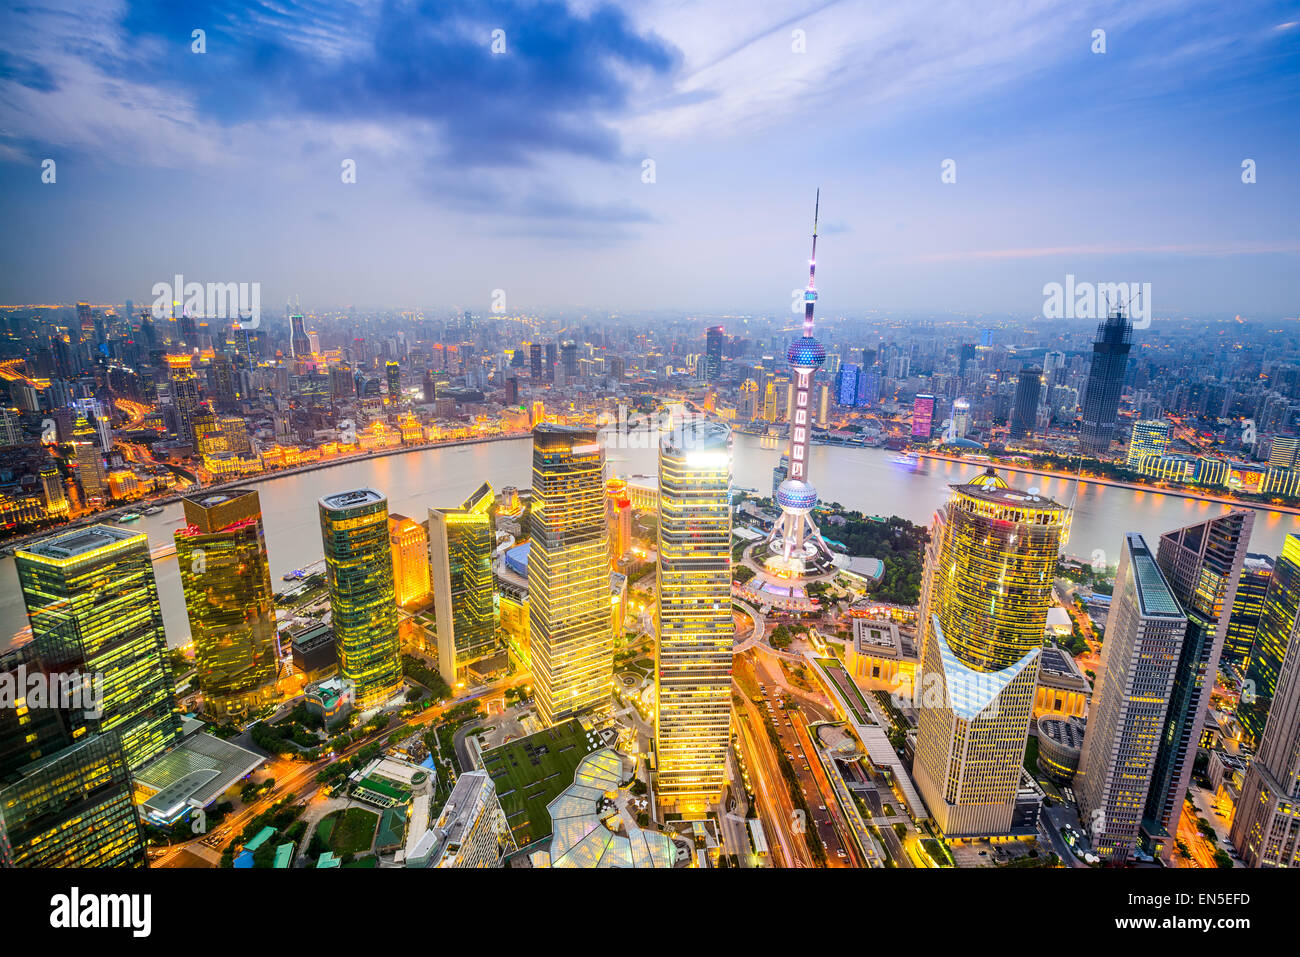 Shanghai, Chine ville sur le Quartier Financier de Pudong. Photo Stock